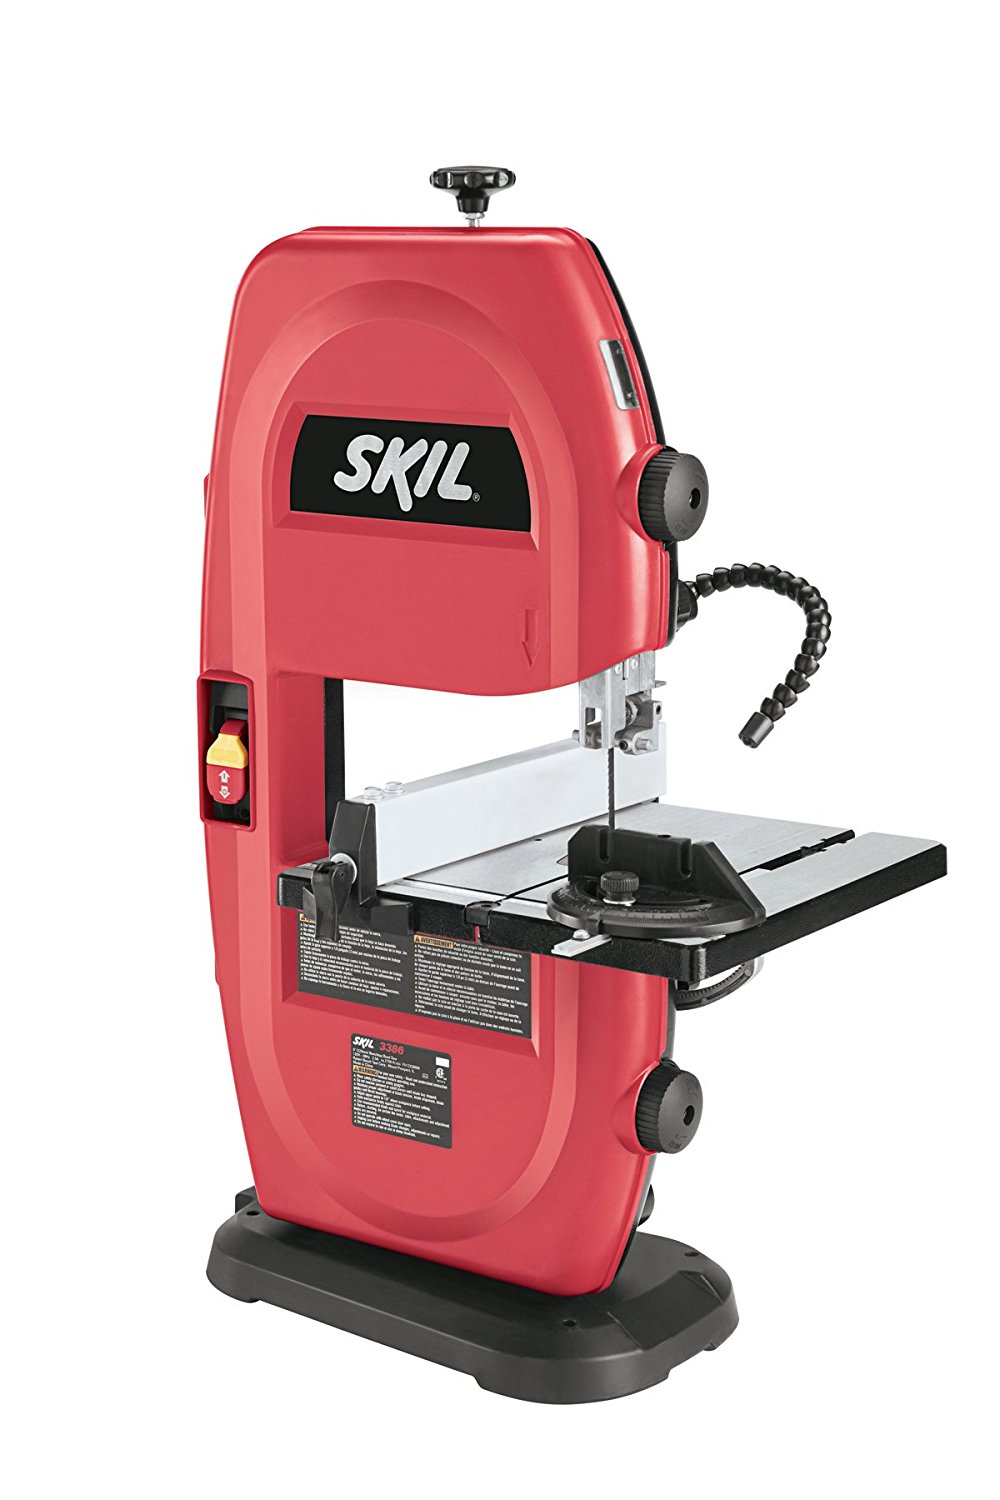 Resaw Bandsaw Reviews